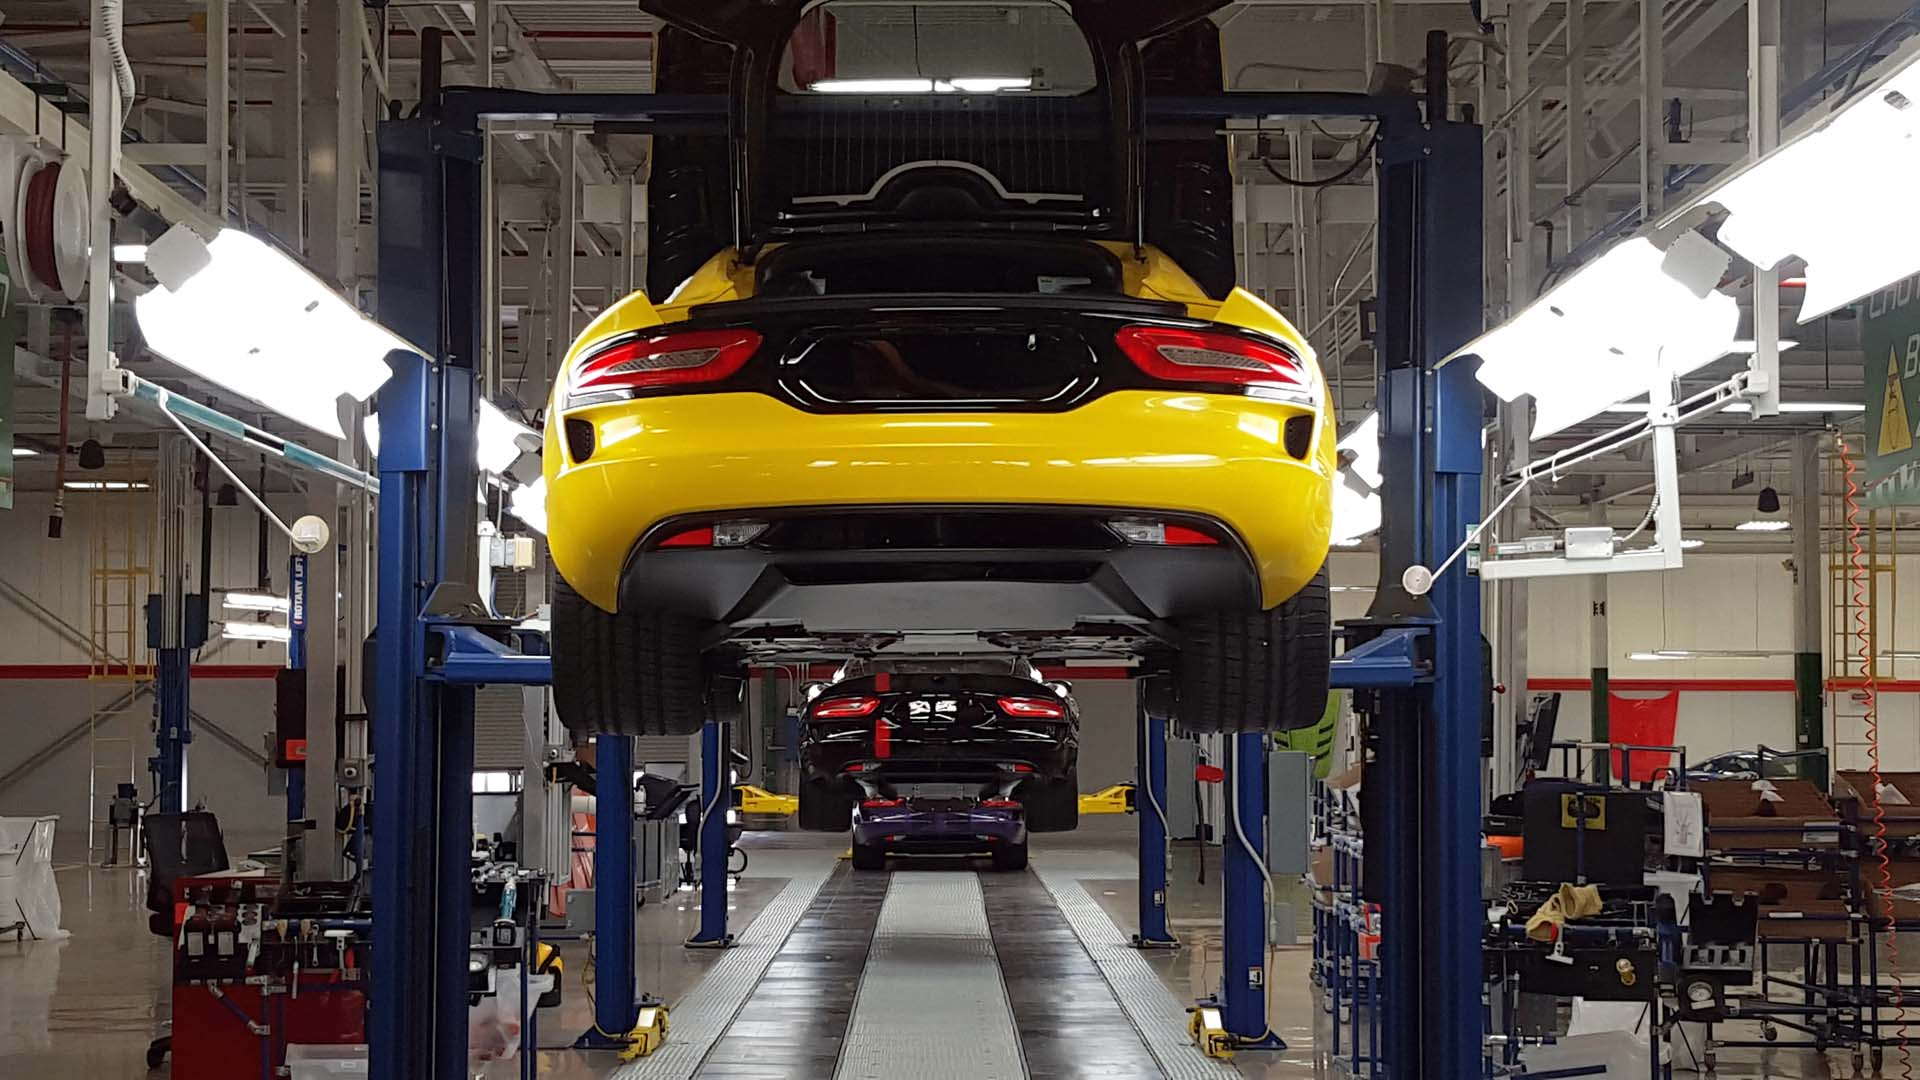 At present, Conner Avenue Assembly is producing just 3 Dodge Vipers per day. In this photo, a full day's worth of production waits for finishing touches on the assembly line. The plant can build up to 12 cars per day, when required. Each car is hand-assembled and uniquely finished to its owner's individual tastes.